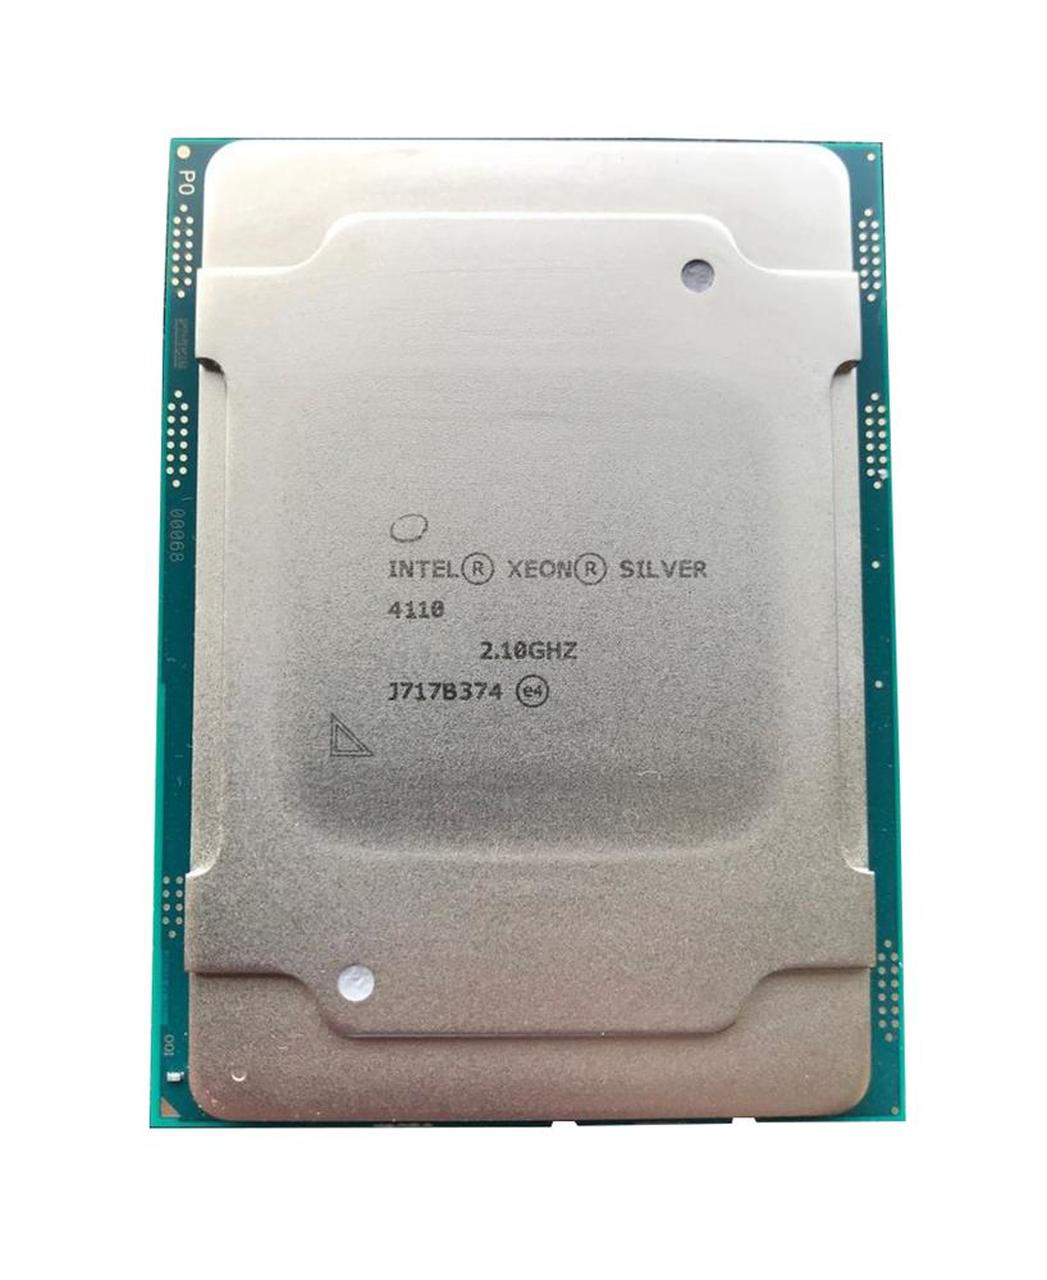 HPE DL380 Gen10 4110 Xeon-S Kit 826846-B21